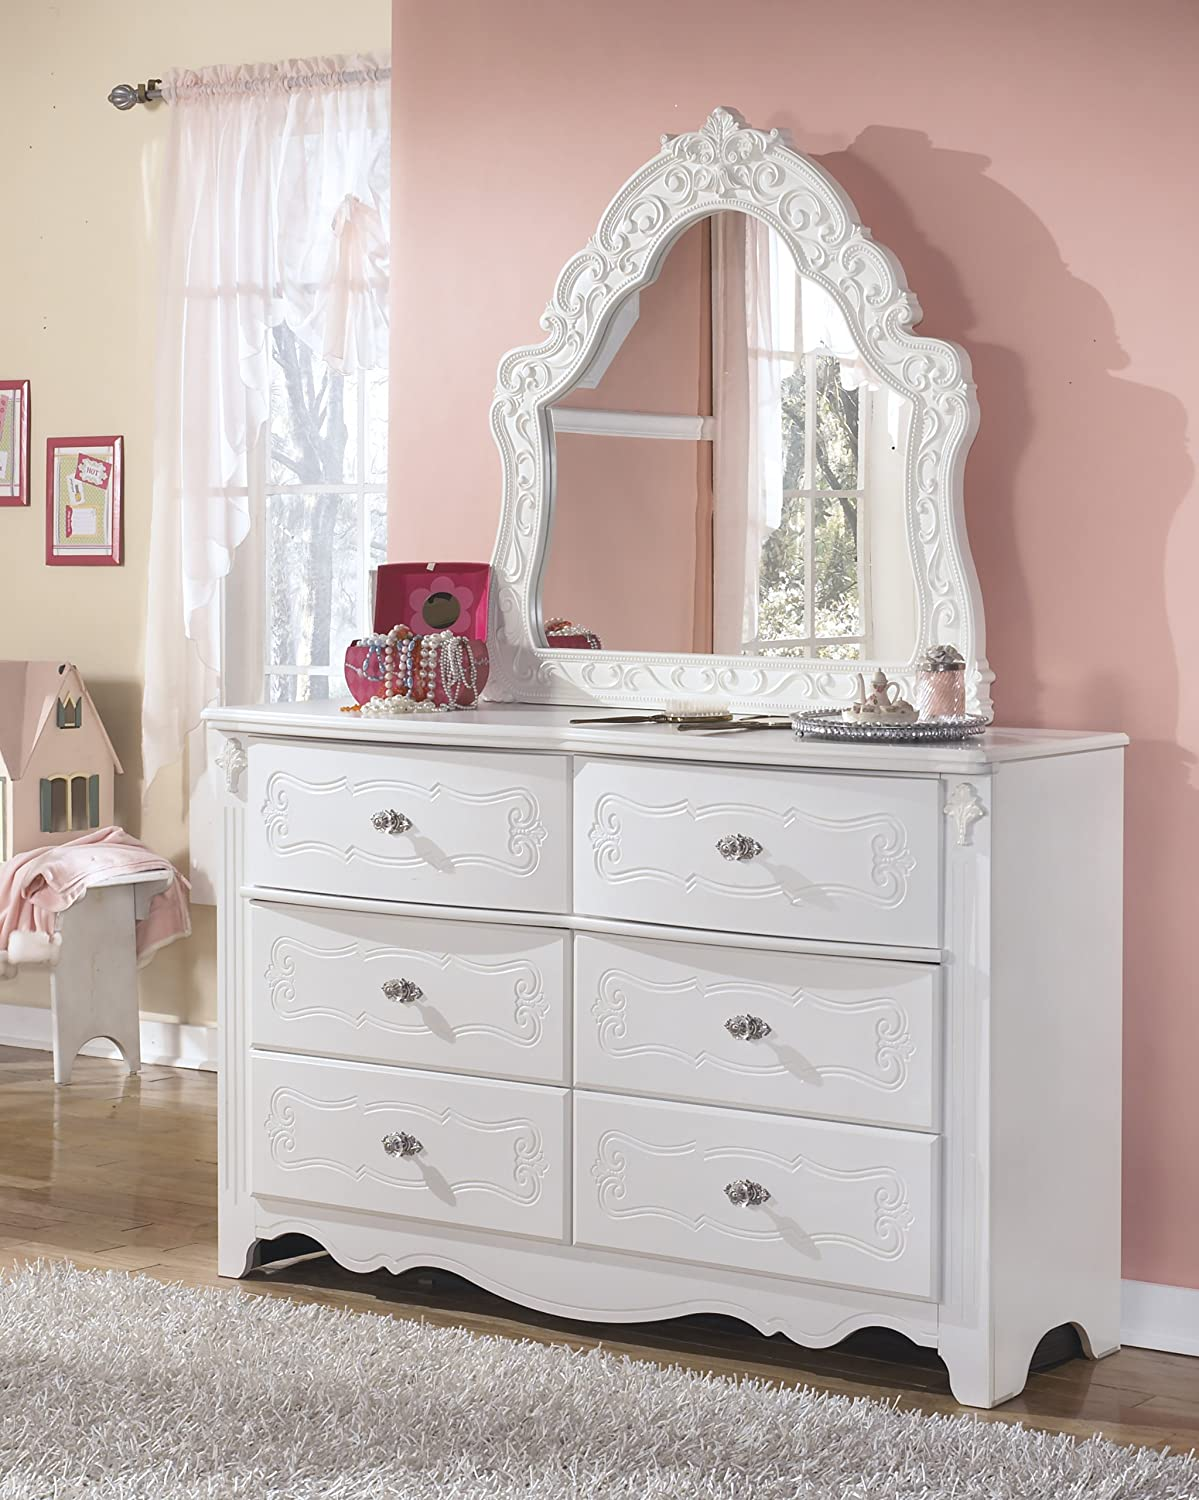 Exquisite French Style Youth Wood Dresser and Mirror in White Color